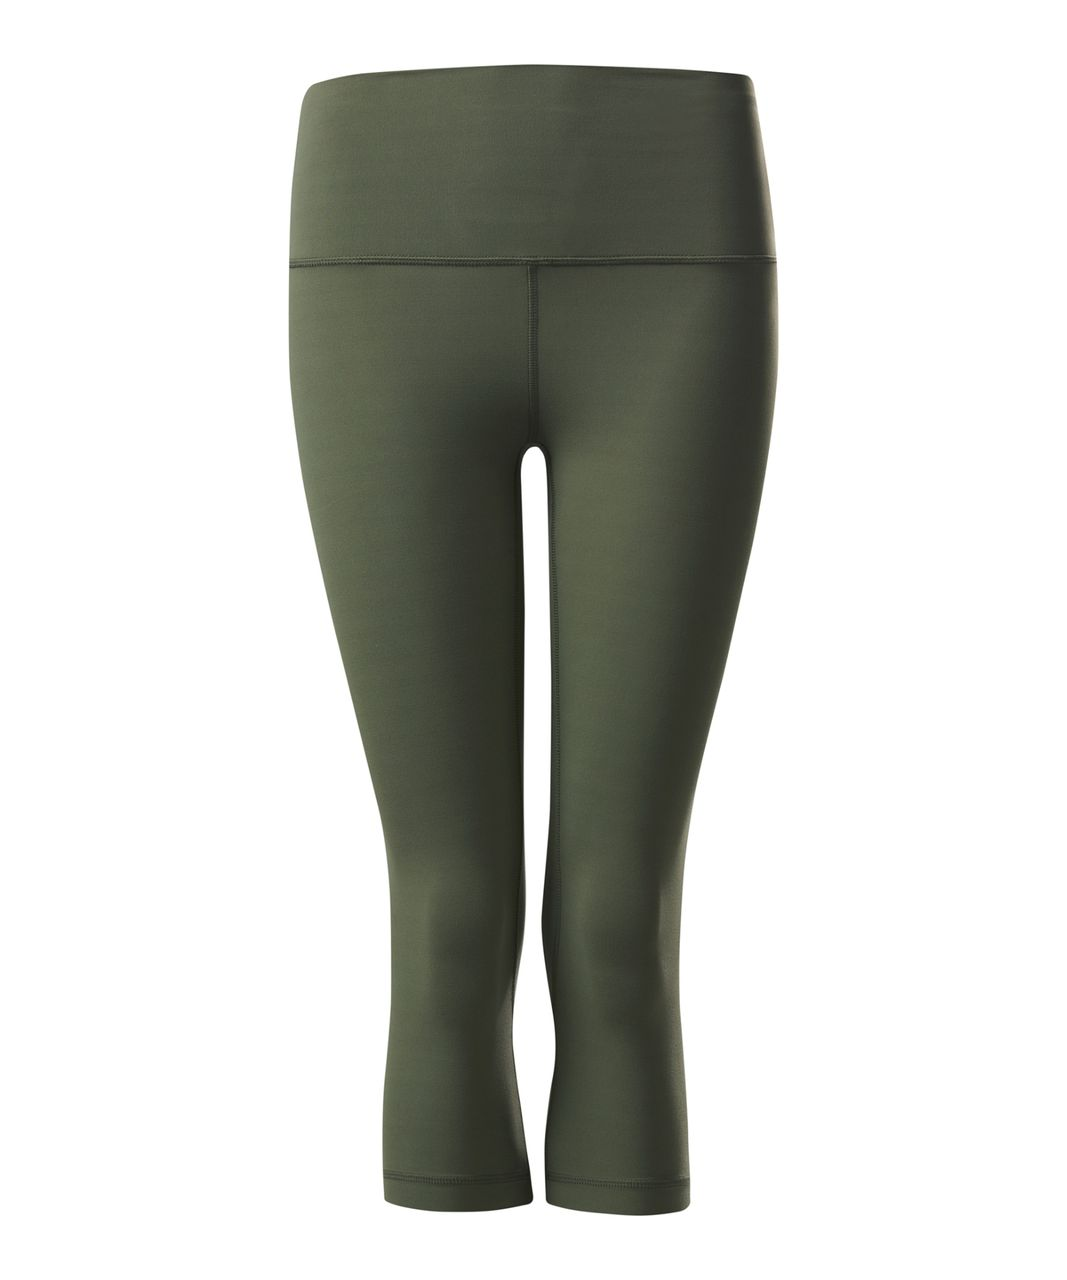 Lululemon Align Crop - Fatigue Green